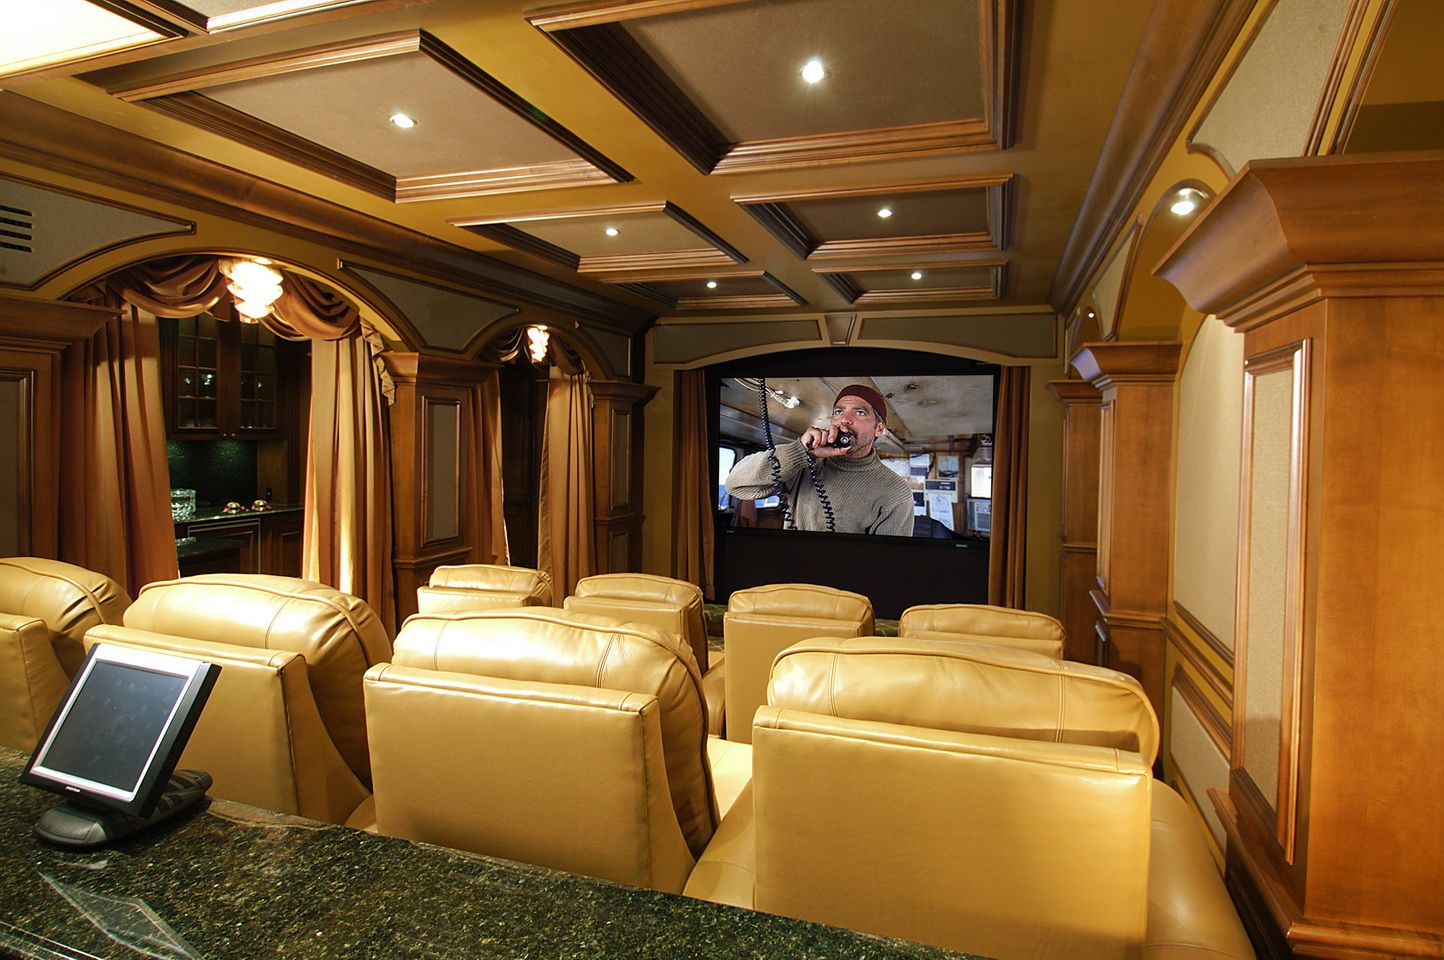 top 25 ideas about media rooms on pinterest media room design theater and beautiful homes - Media Room Design Ideas